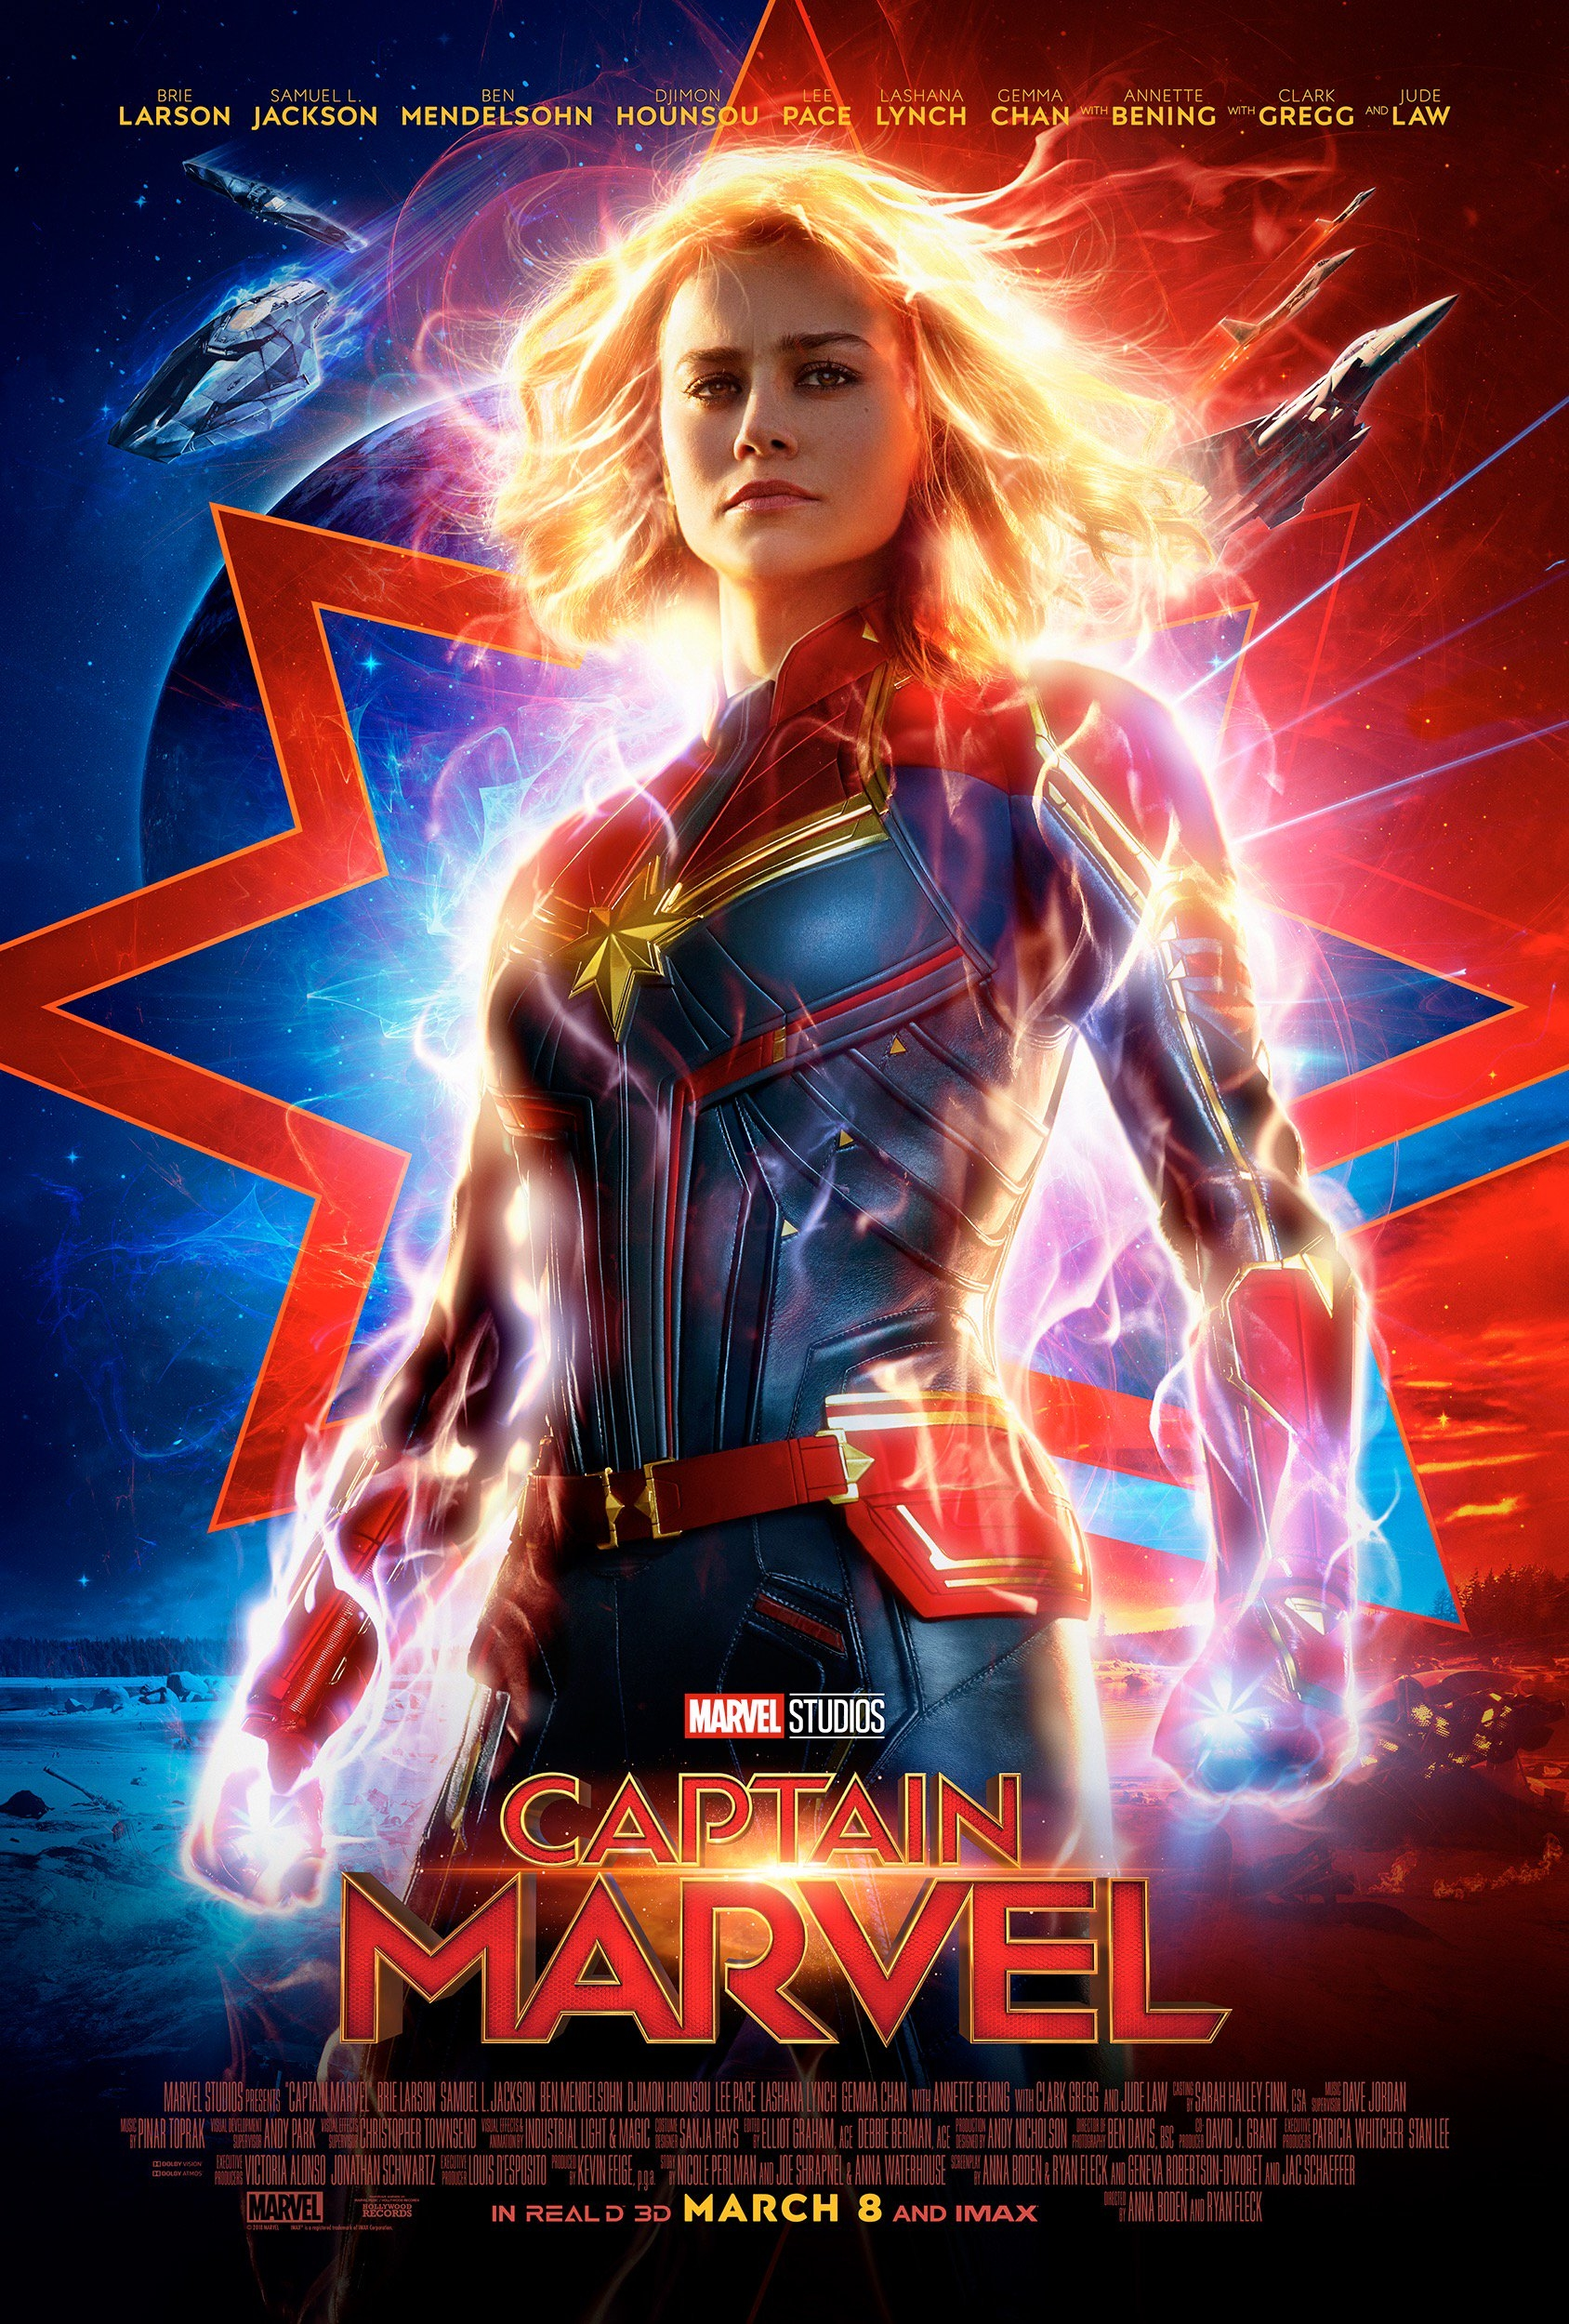 Brie Larson in Captain Marvel (2019)